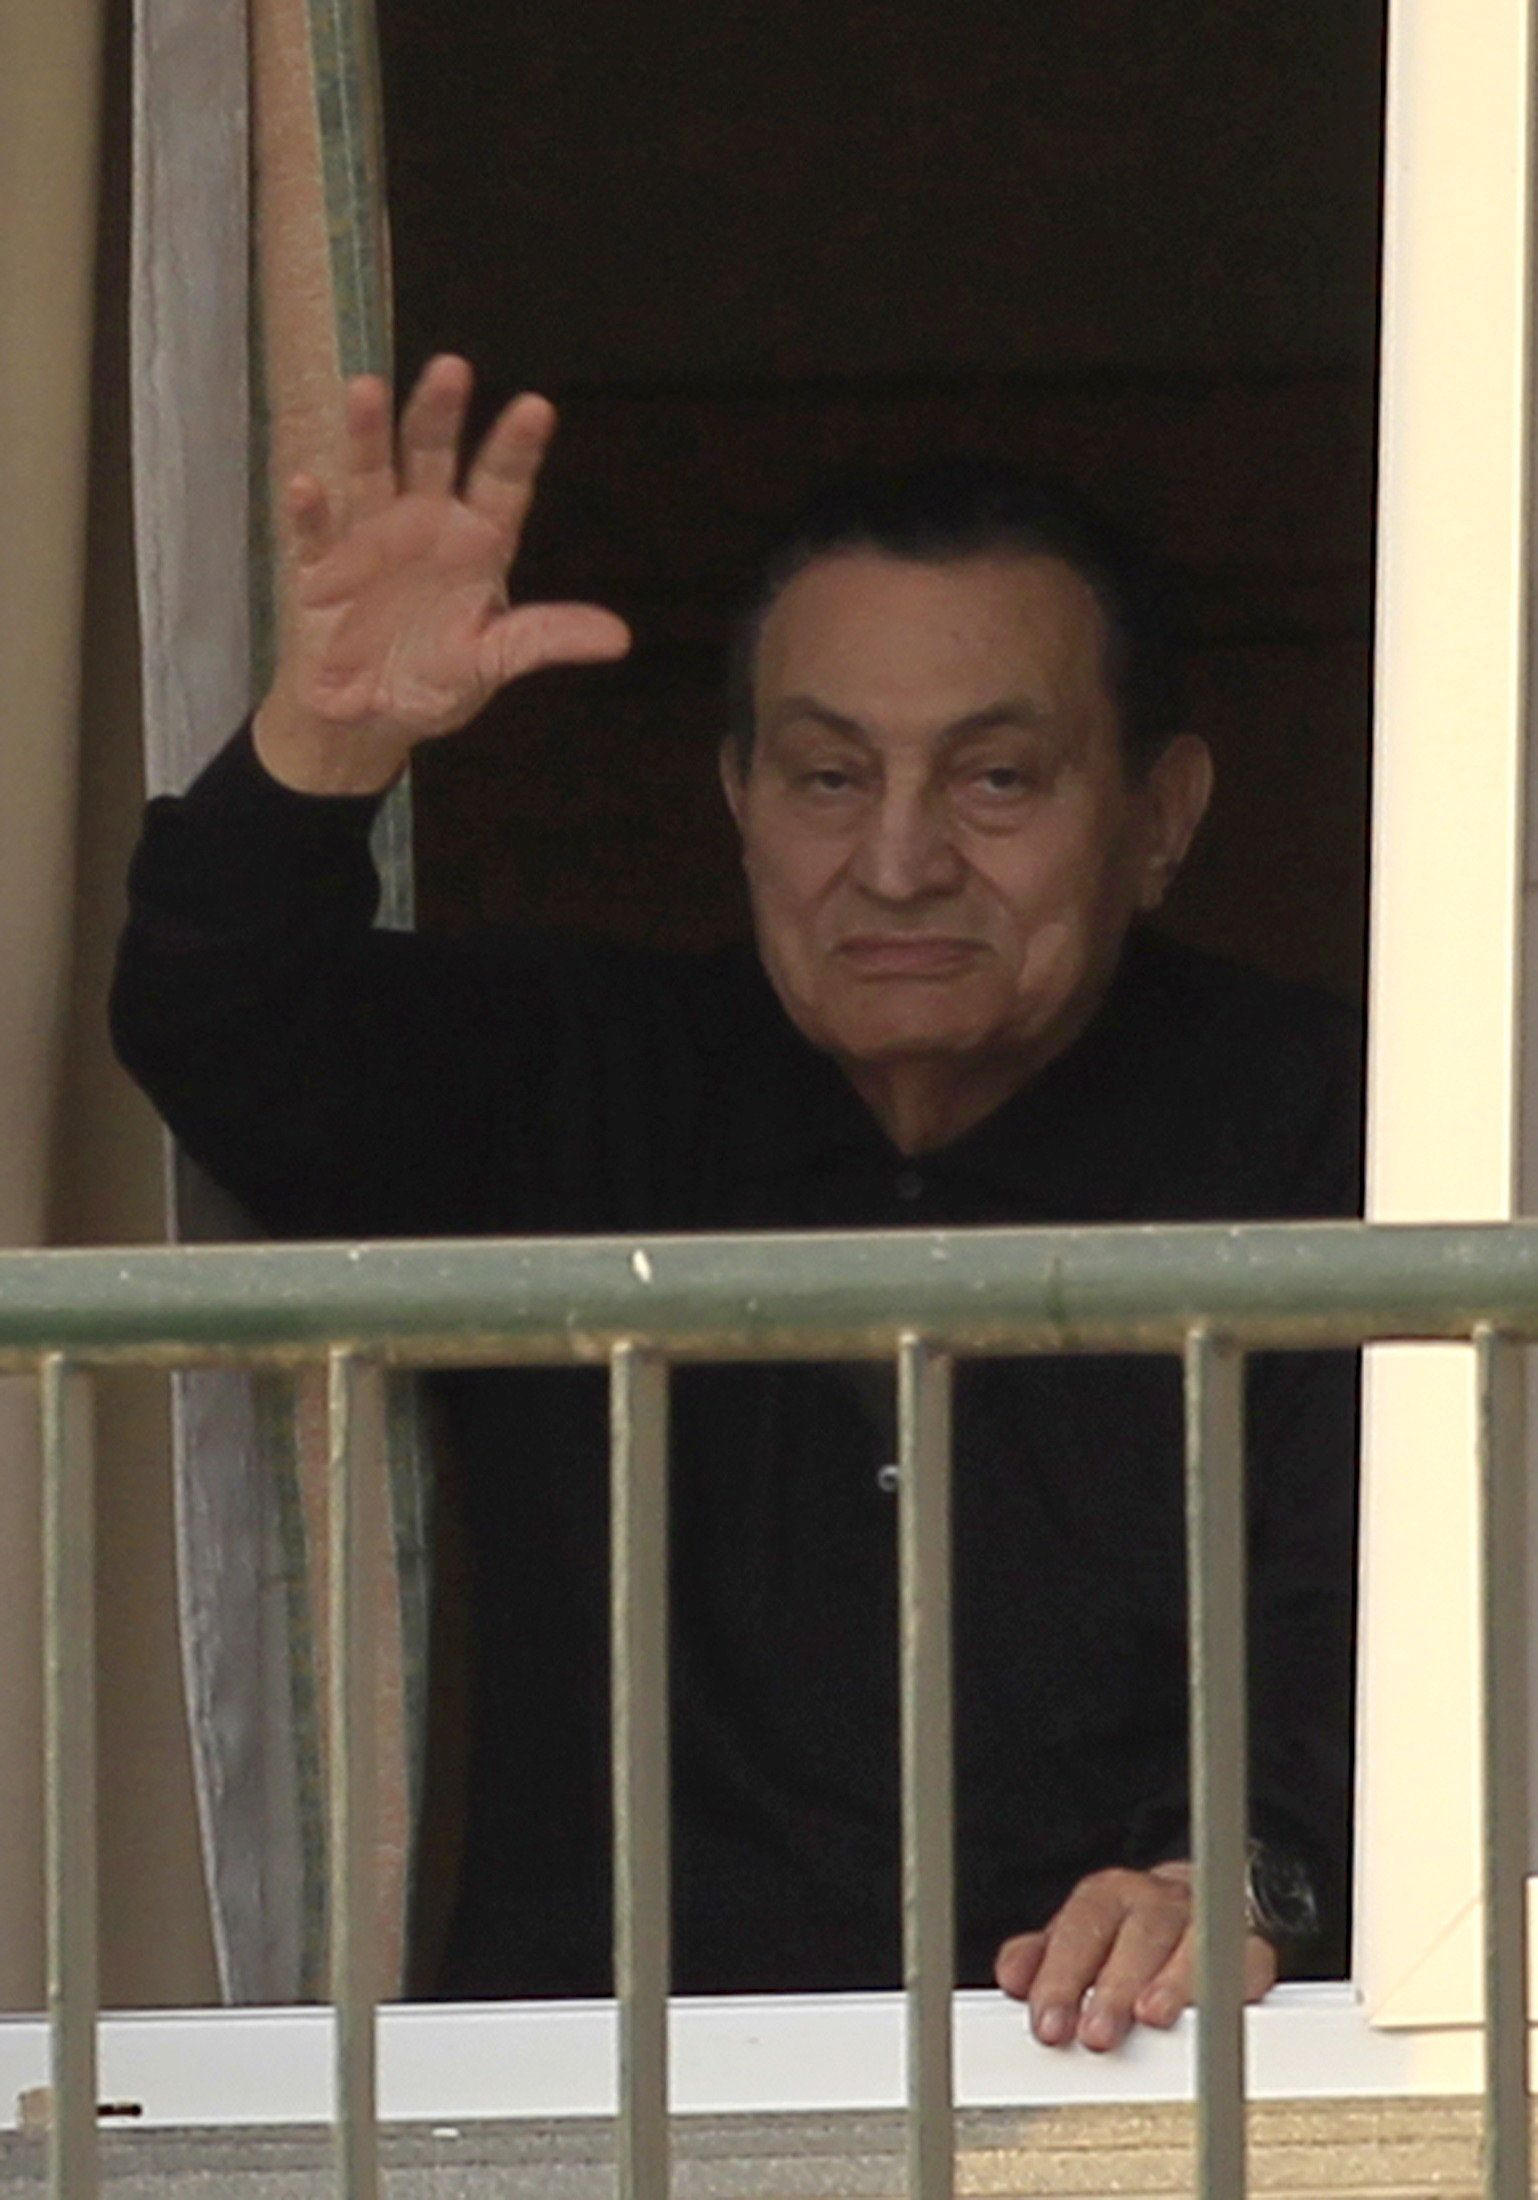 Ousted Egyptian president Hosni Mubarak waves to his supporters outside the area where he is hospitalized during his birthday at Maadi military hospital on the outskirts of Cairo May 4, 2015. REUTERS/Mohamed Abd El Ghany